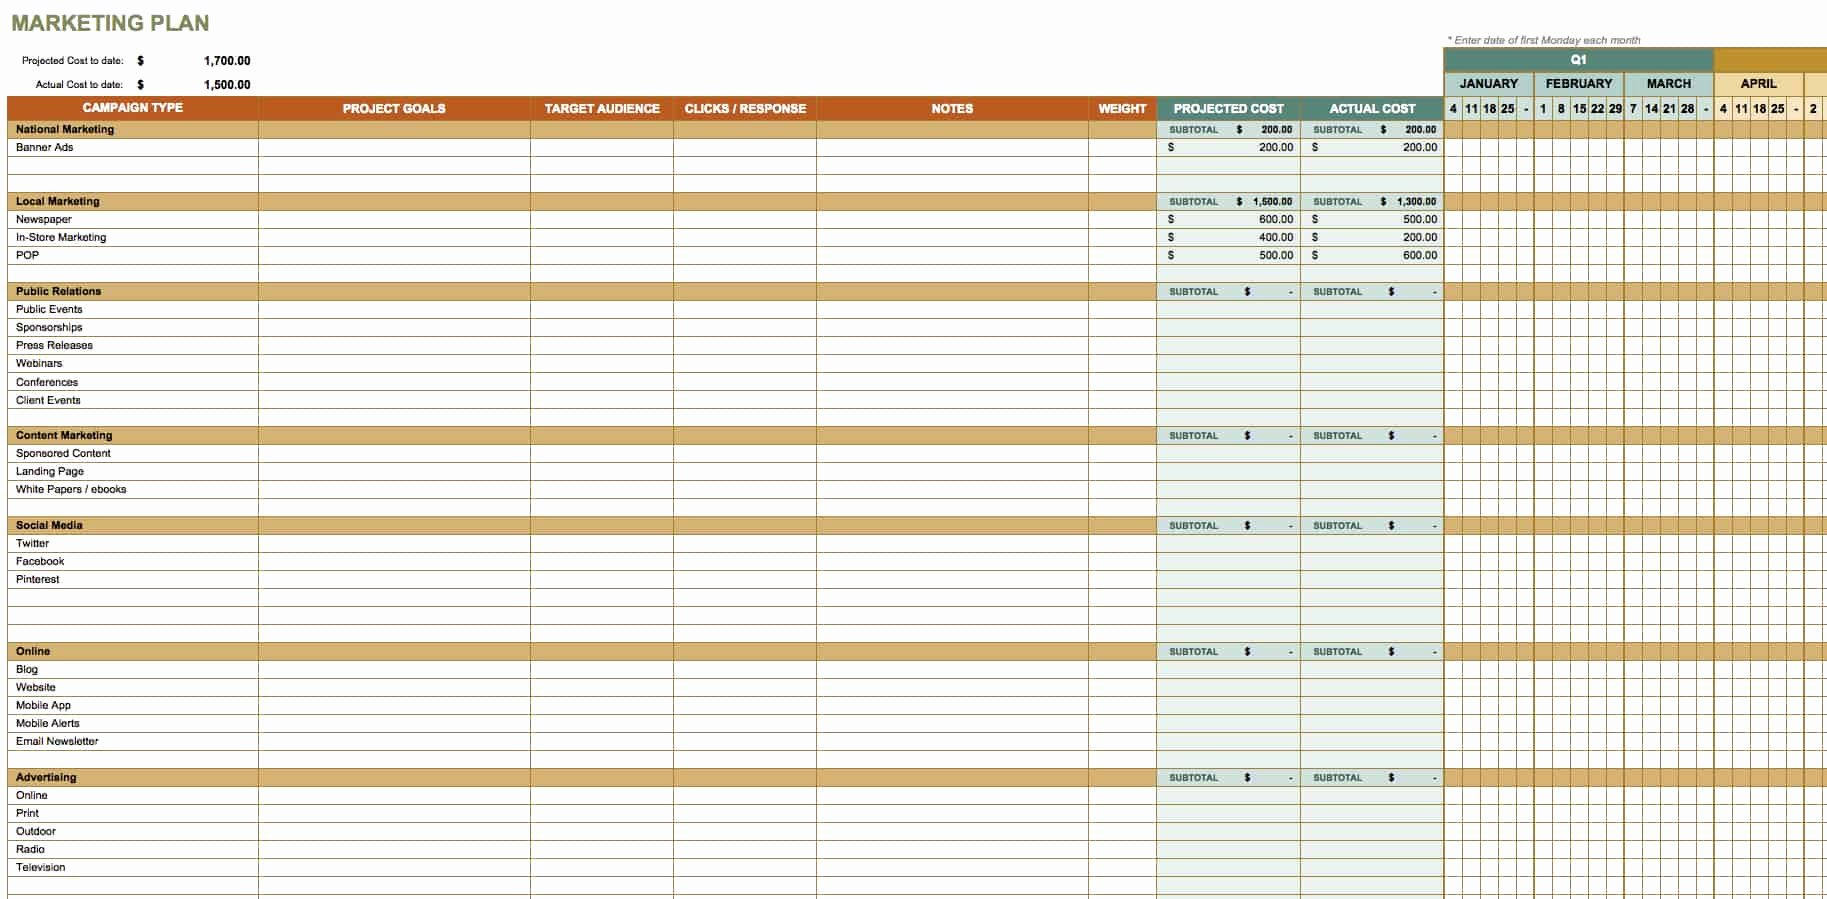 Marketing Action Plan Templates Best Of Free Marketing Plan Templates for Excel Smartsheet